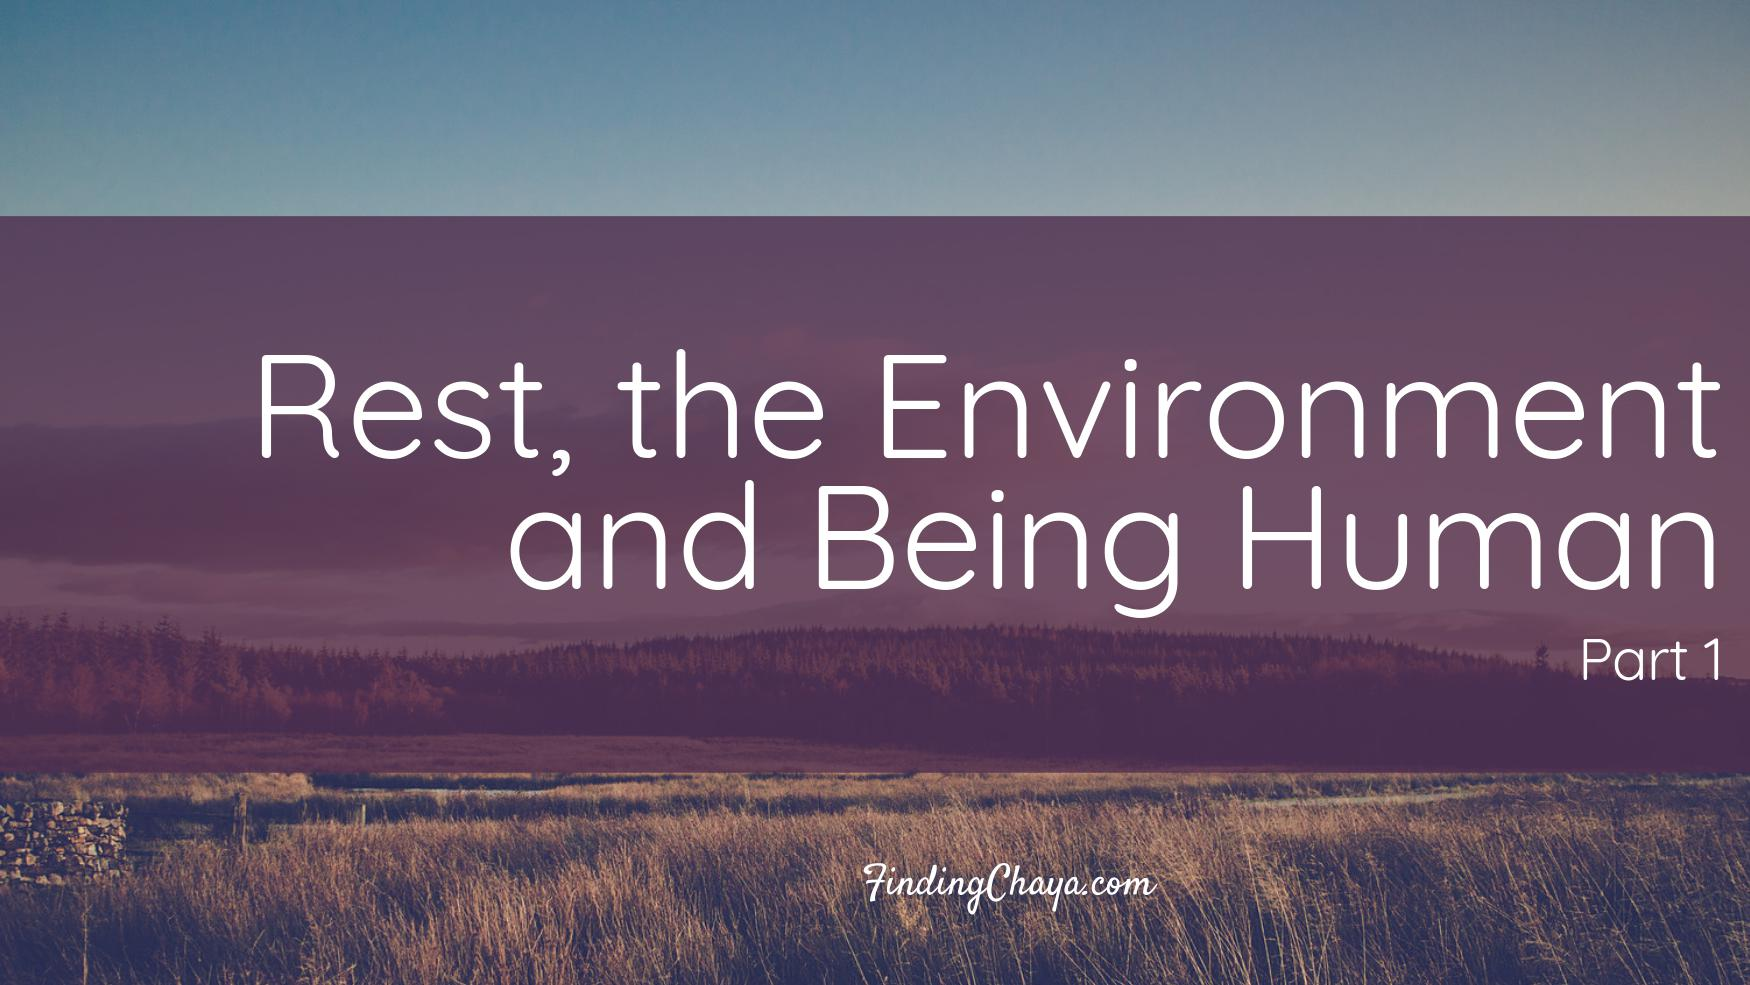 Rest, the Environment and Being Human (Part 1)